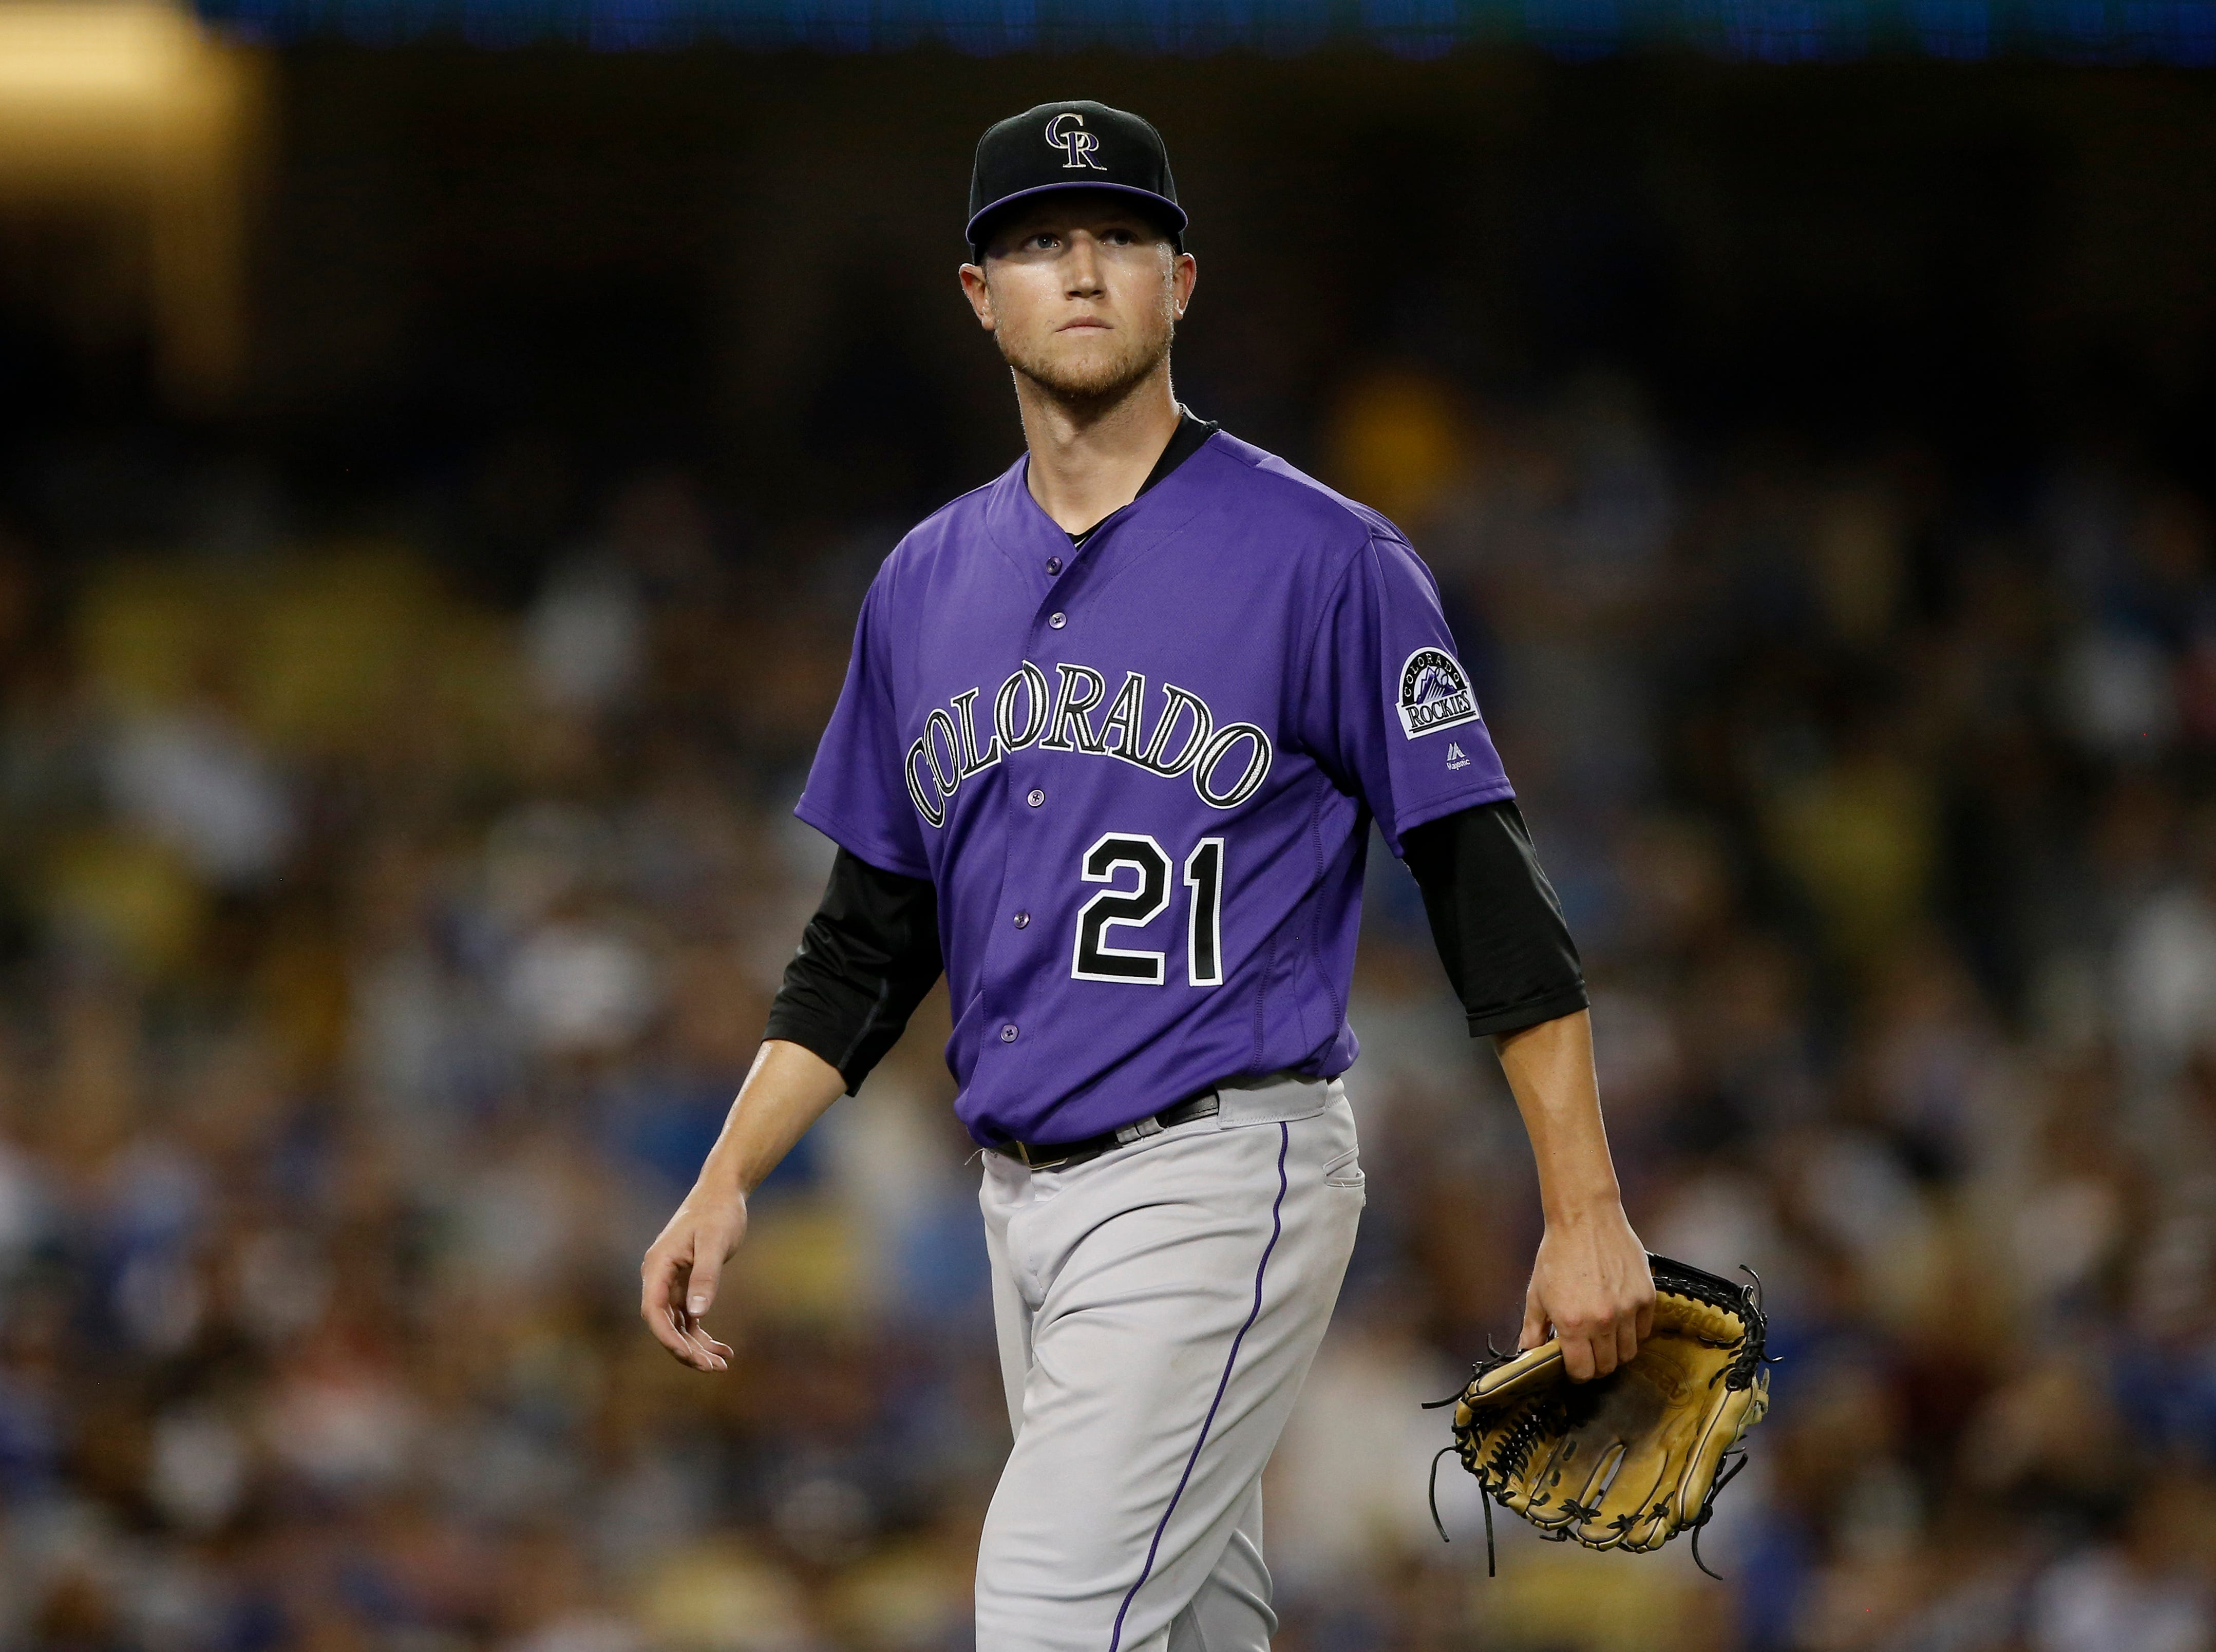 Colorado Rockies starting pitcher Kyle Freeland walks off the field after being pulled by manager Bud Black during the seventh inning of a baseball game against the Los Angeles Dodgers in Los Angeles, Tuesday, Sept. 18, 2018. (AP Photo/Alex Gallardo)